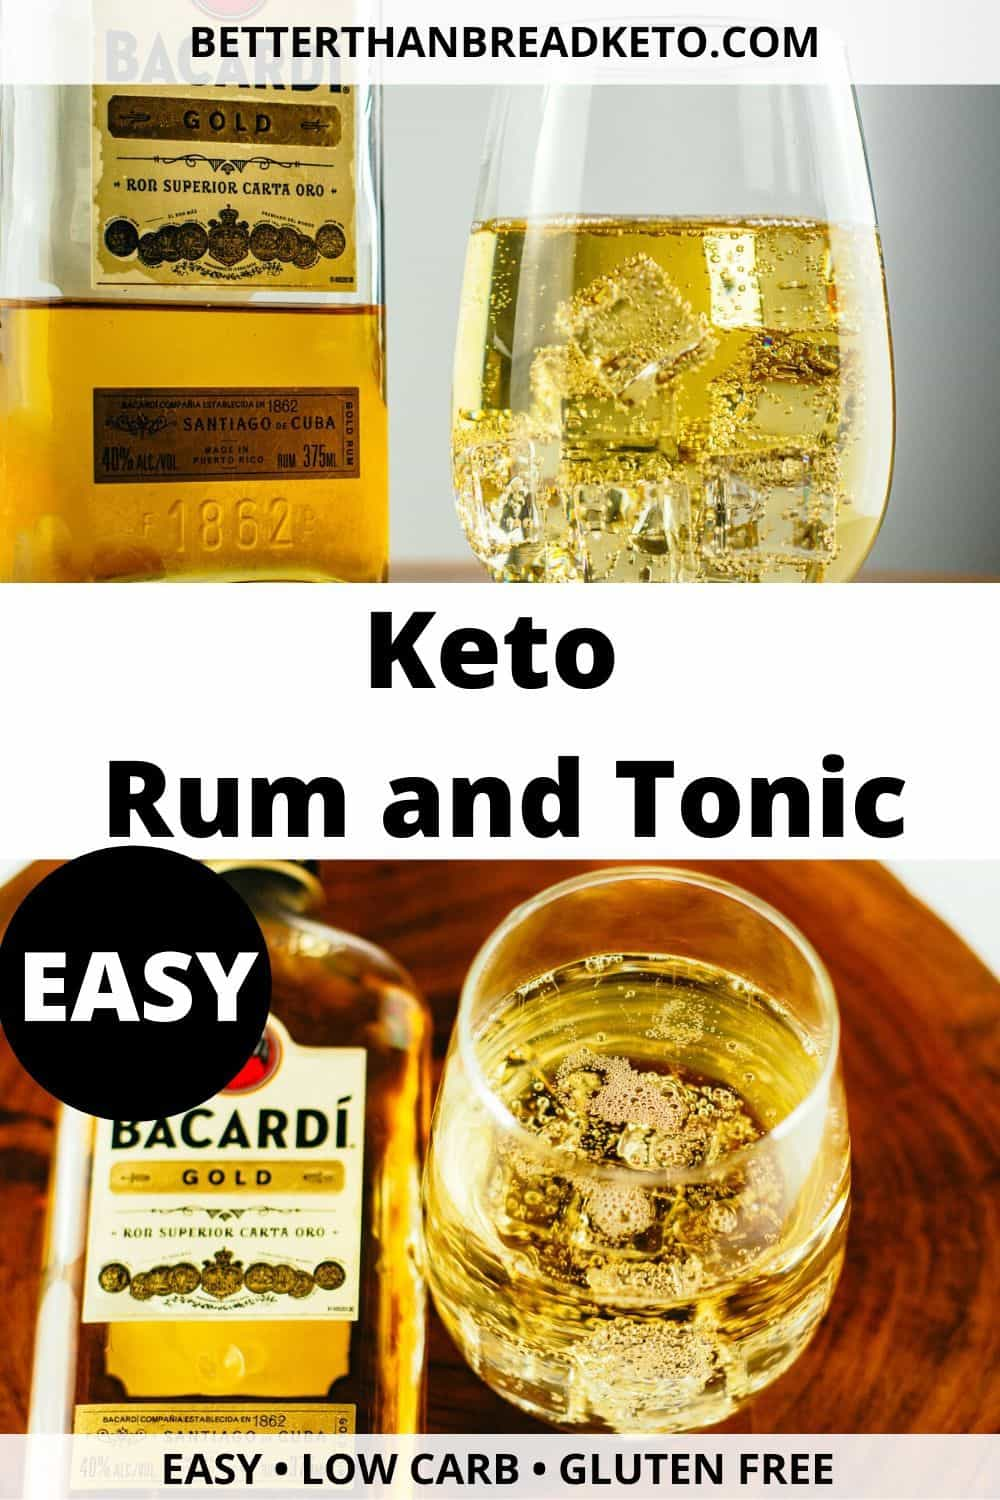 Keto Rum and Tonic